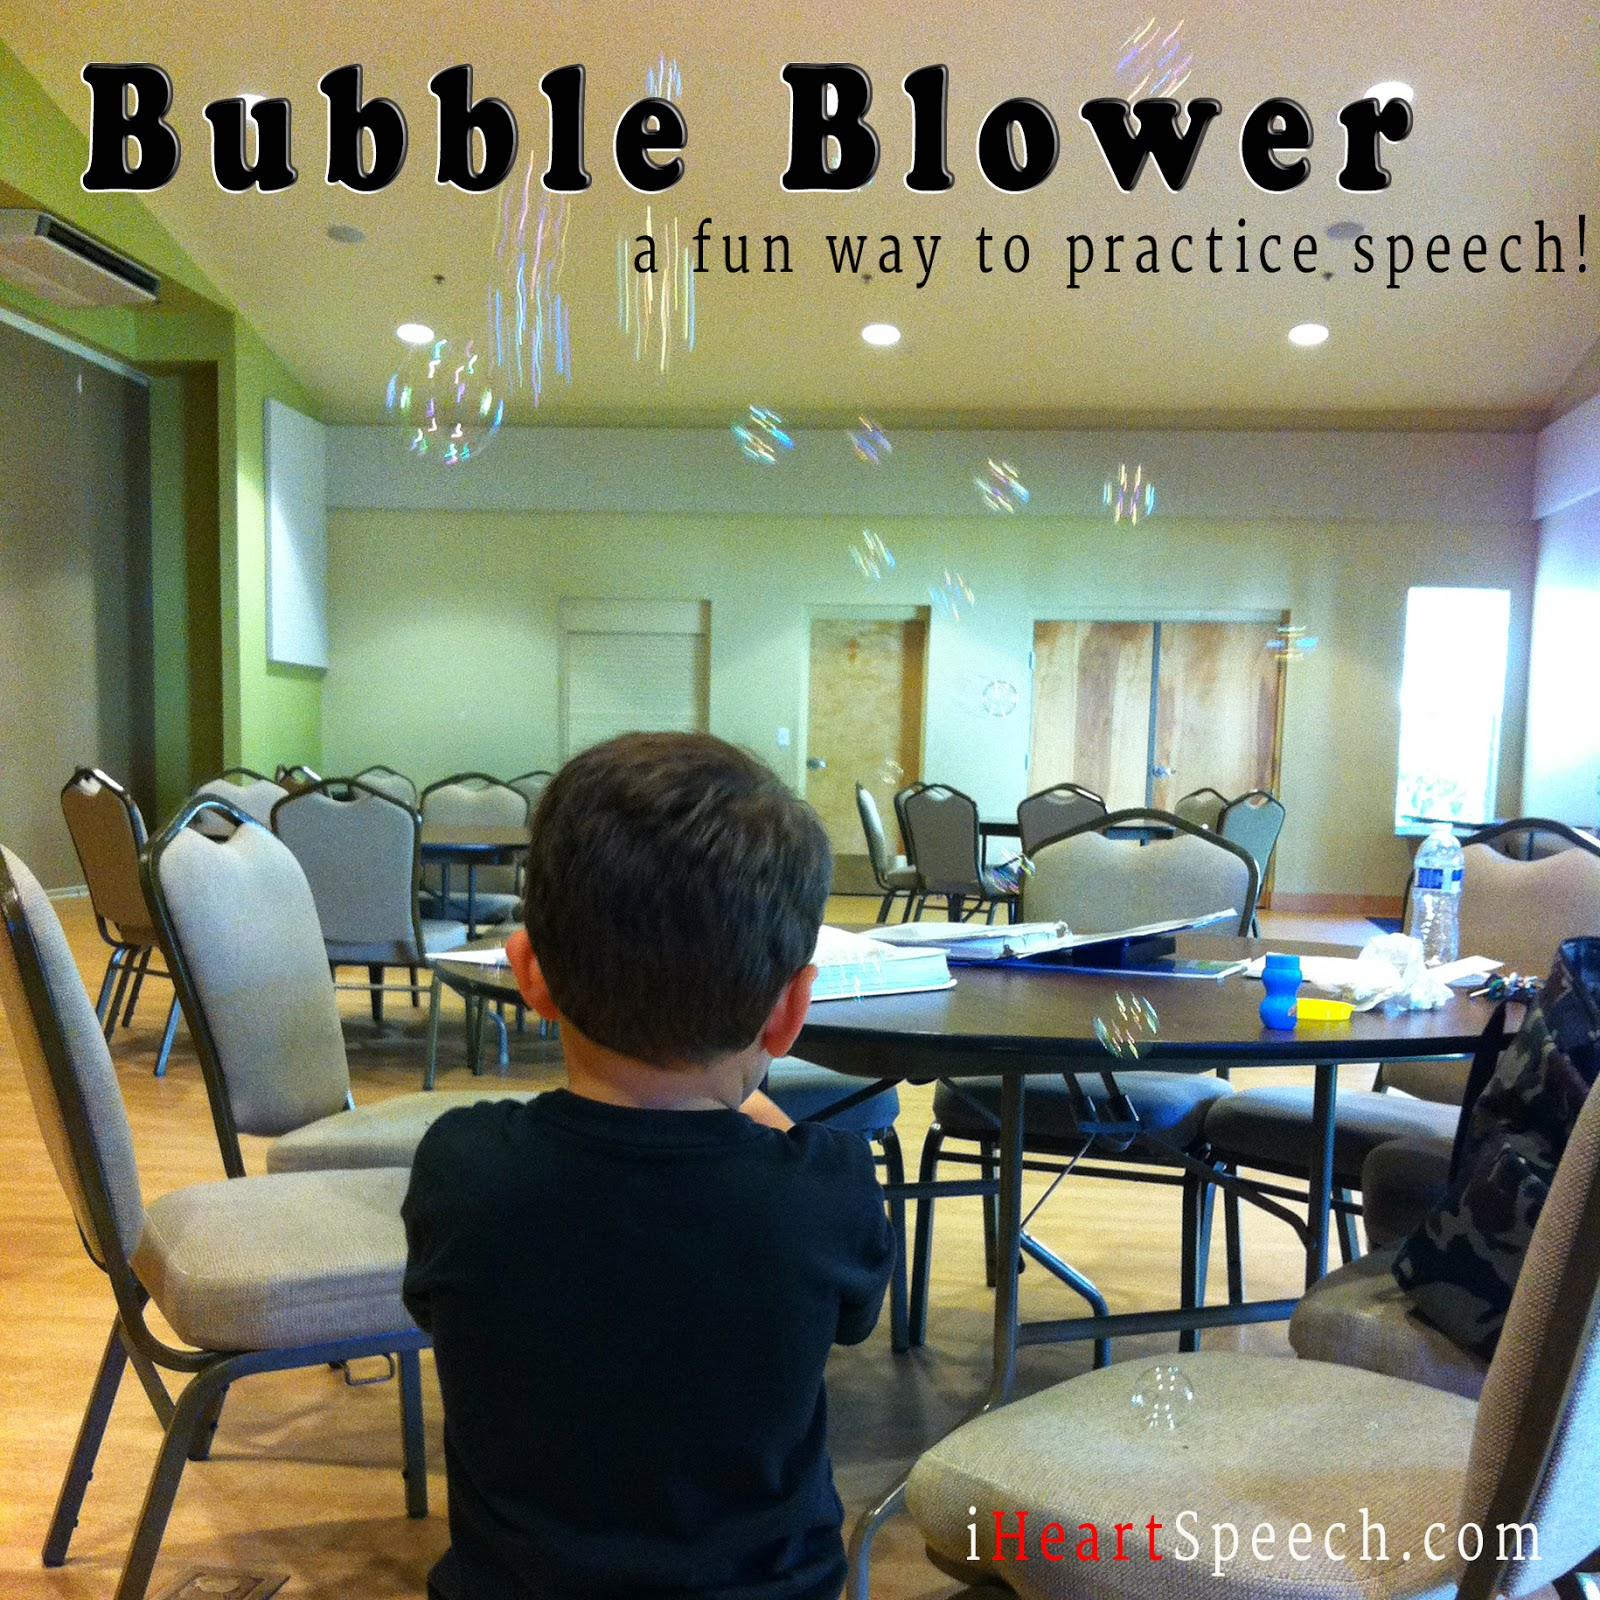 speech therapy, language therapy, body parts, bubbles, following directions, language skills